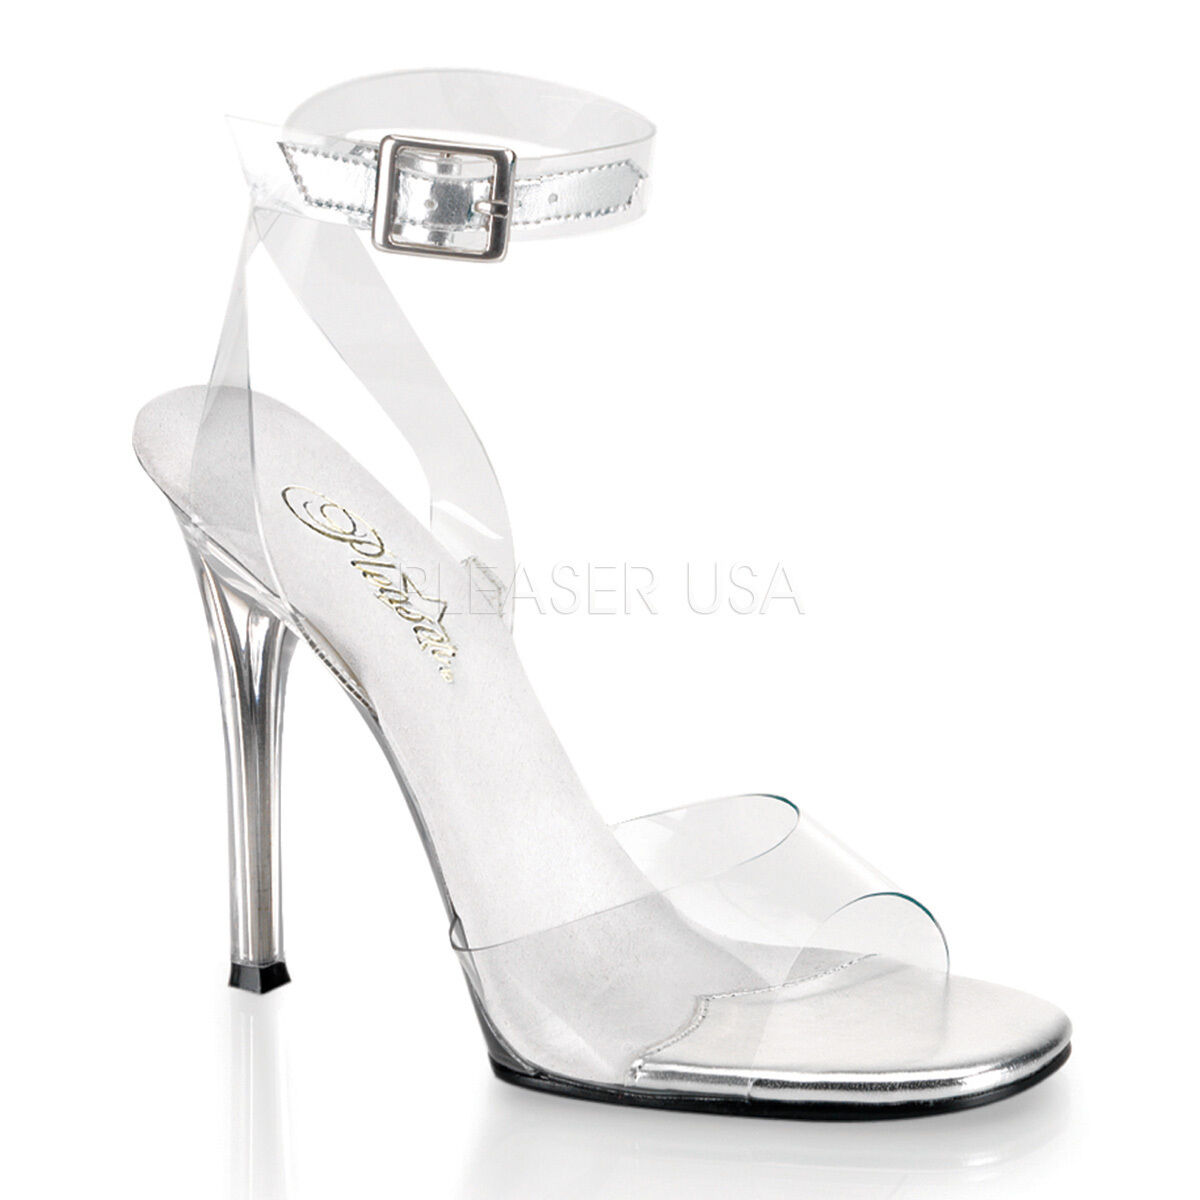 PLEASER Sexy shoes Pageant Clear 4 1 2  High Heels w  Ankle Strap GALA06 C M